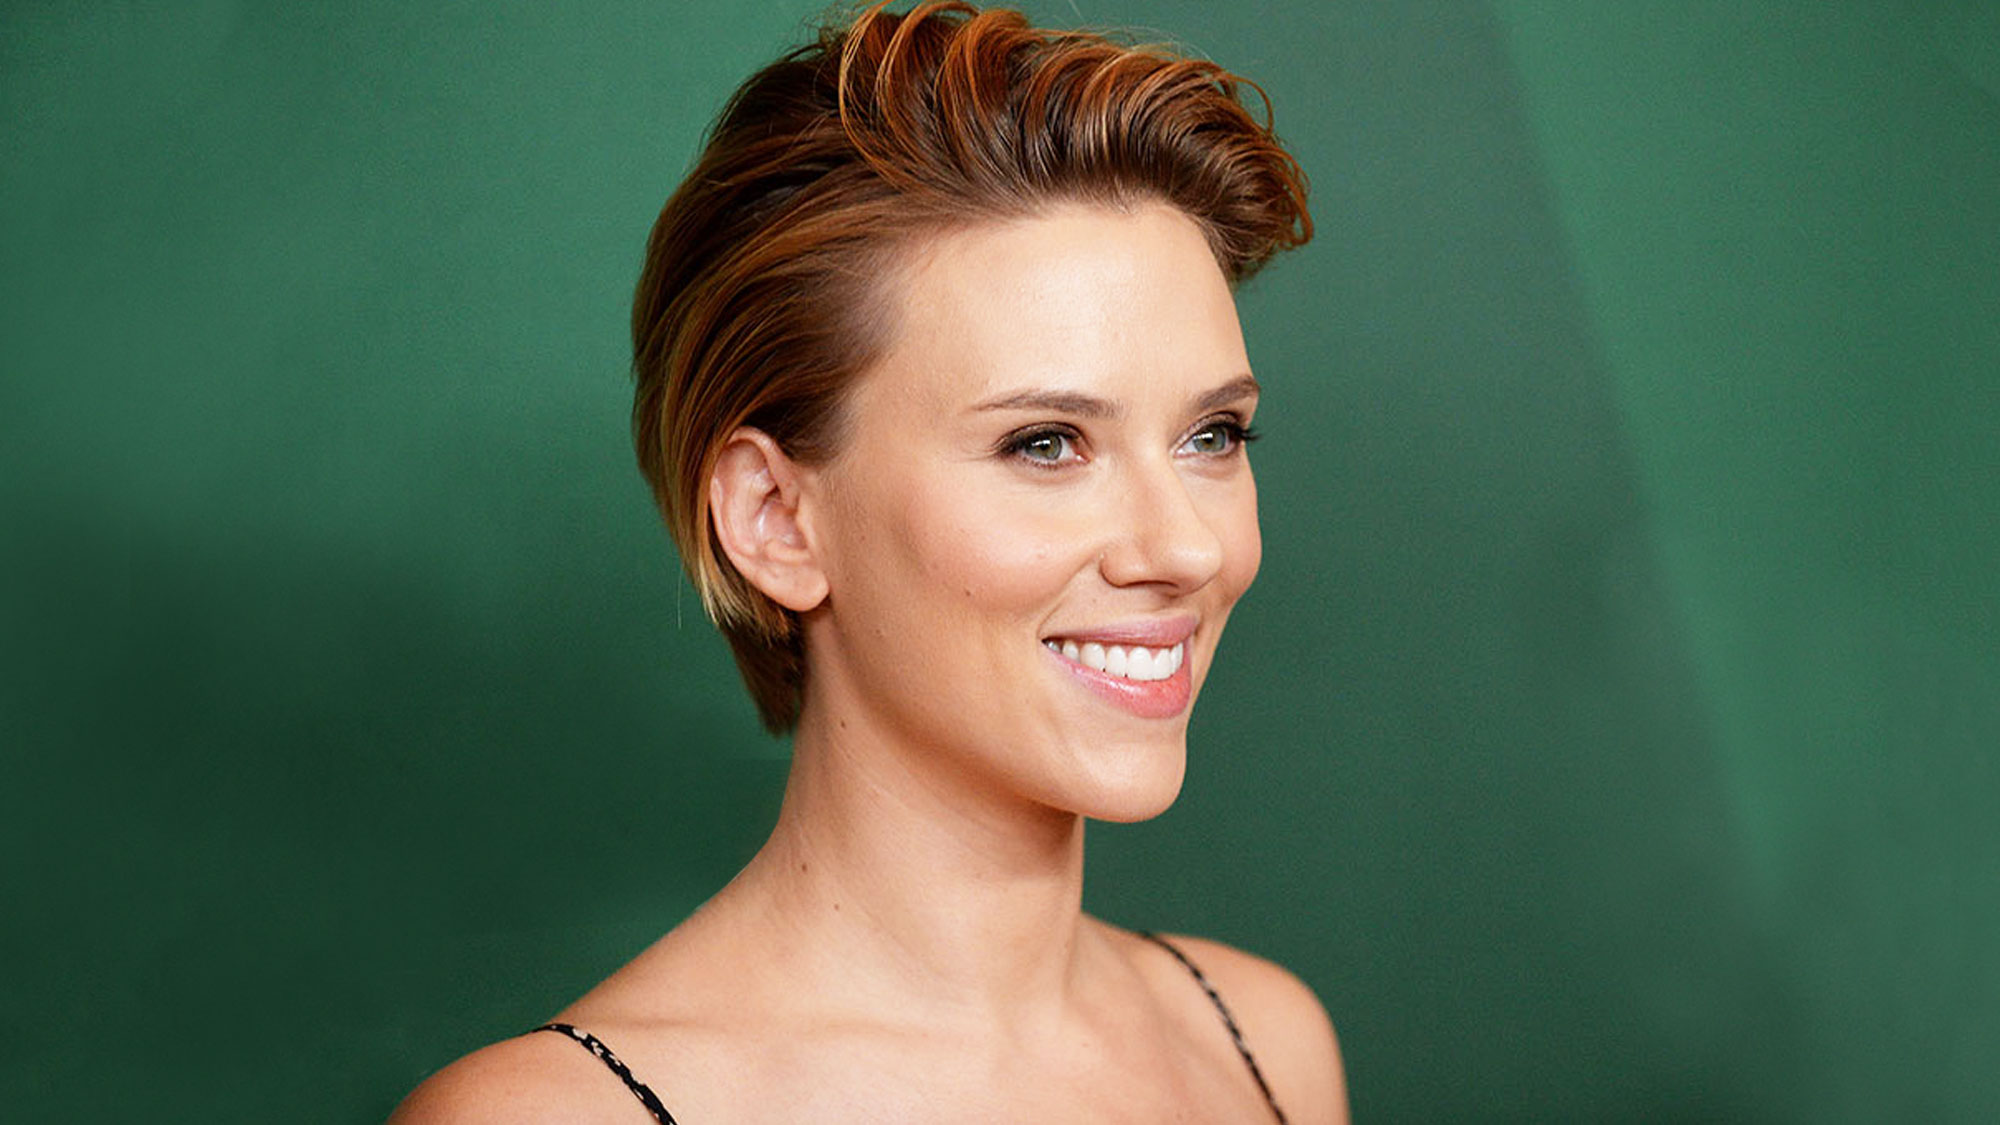 Short Hairstyles 100 celebrity cuts to inspire your new do